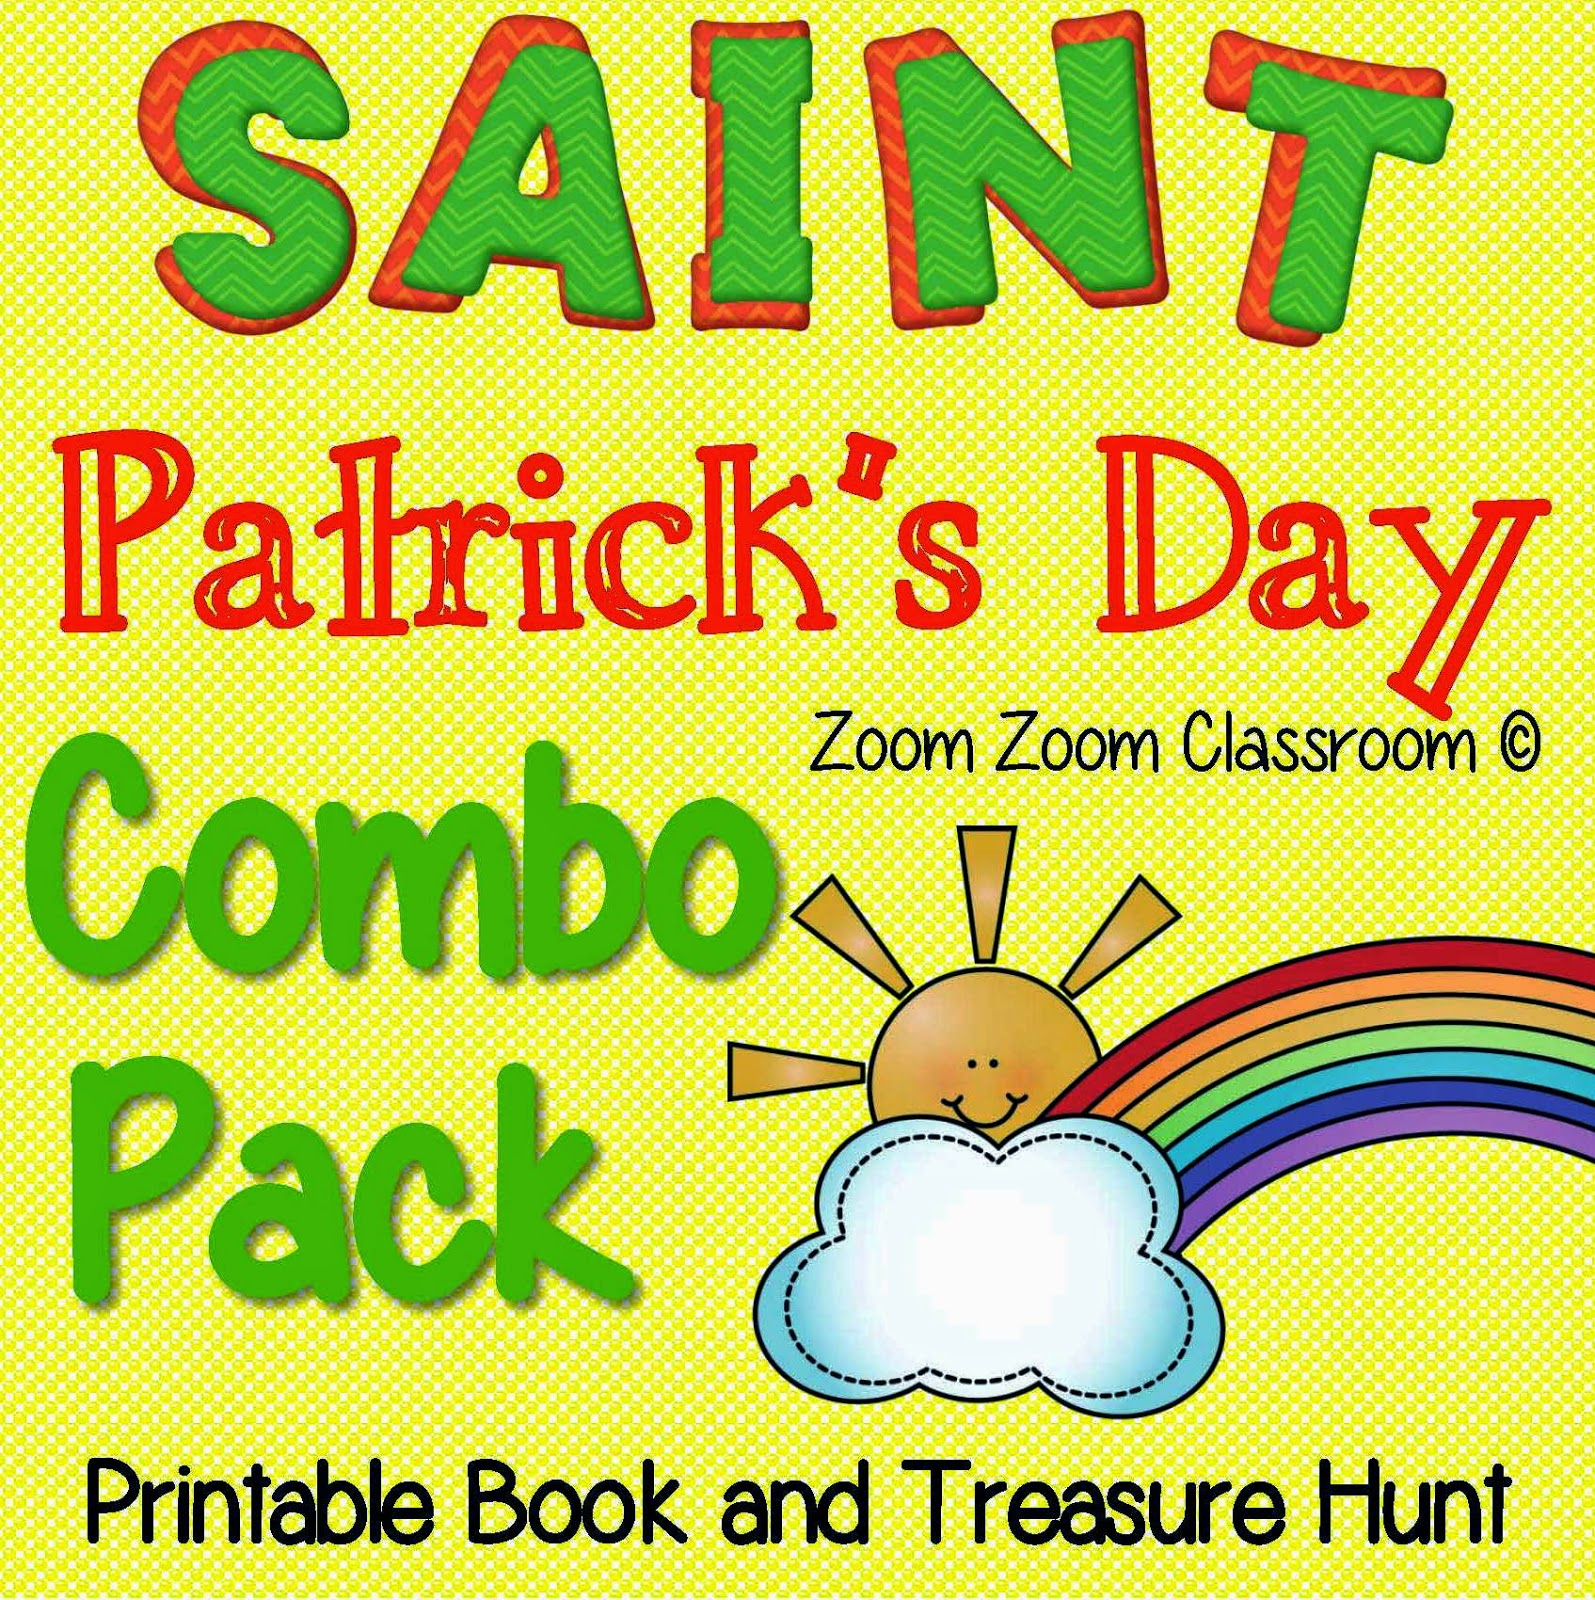 https://www.teacherspayteachers.com/Product/saint-patricks-day-613019